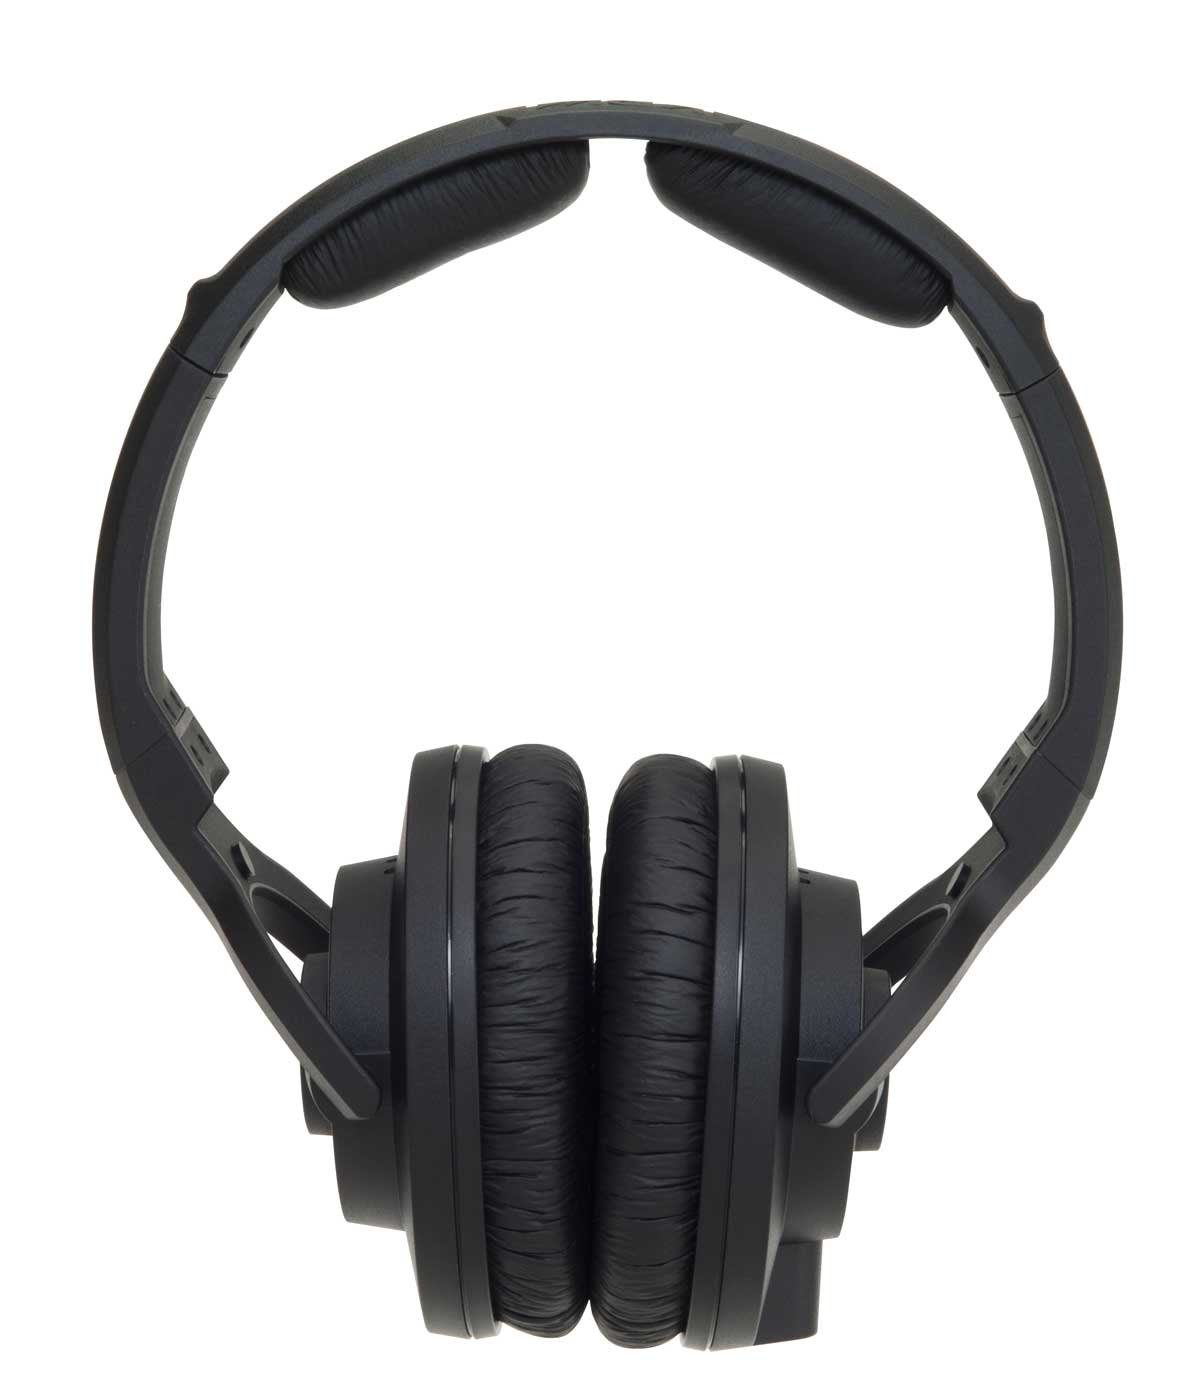 Headphones, dynamic, closed-back, 40mm neodymium drivers, 10Hz-22kHz